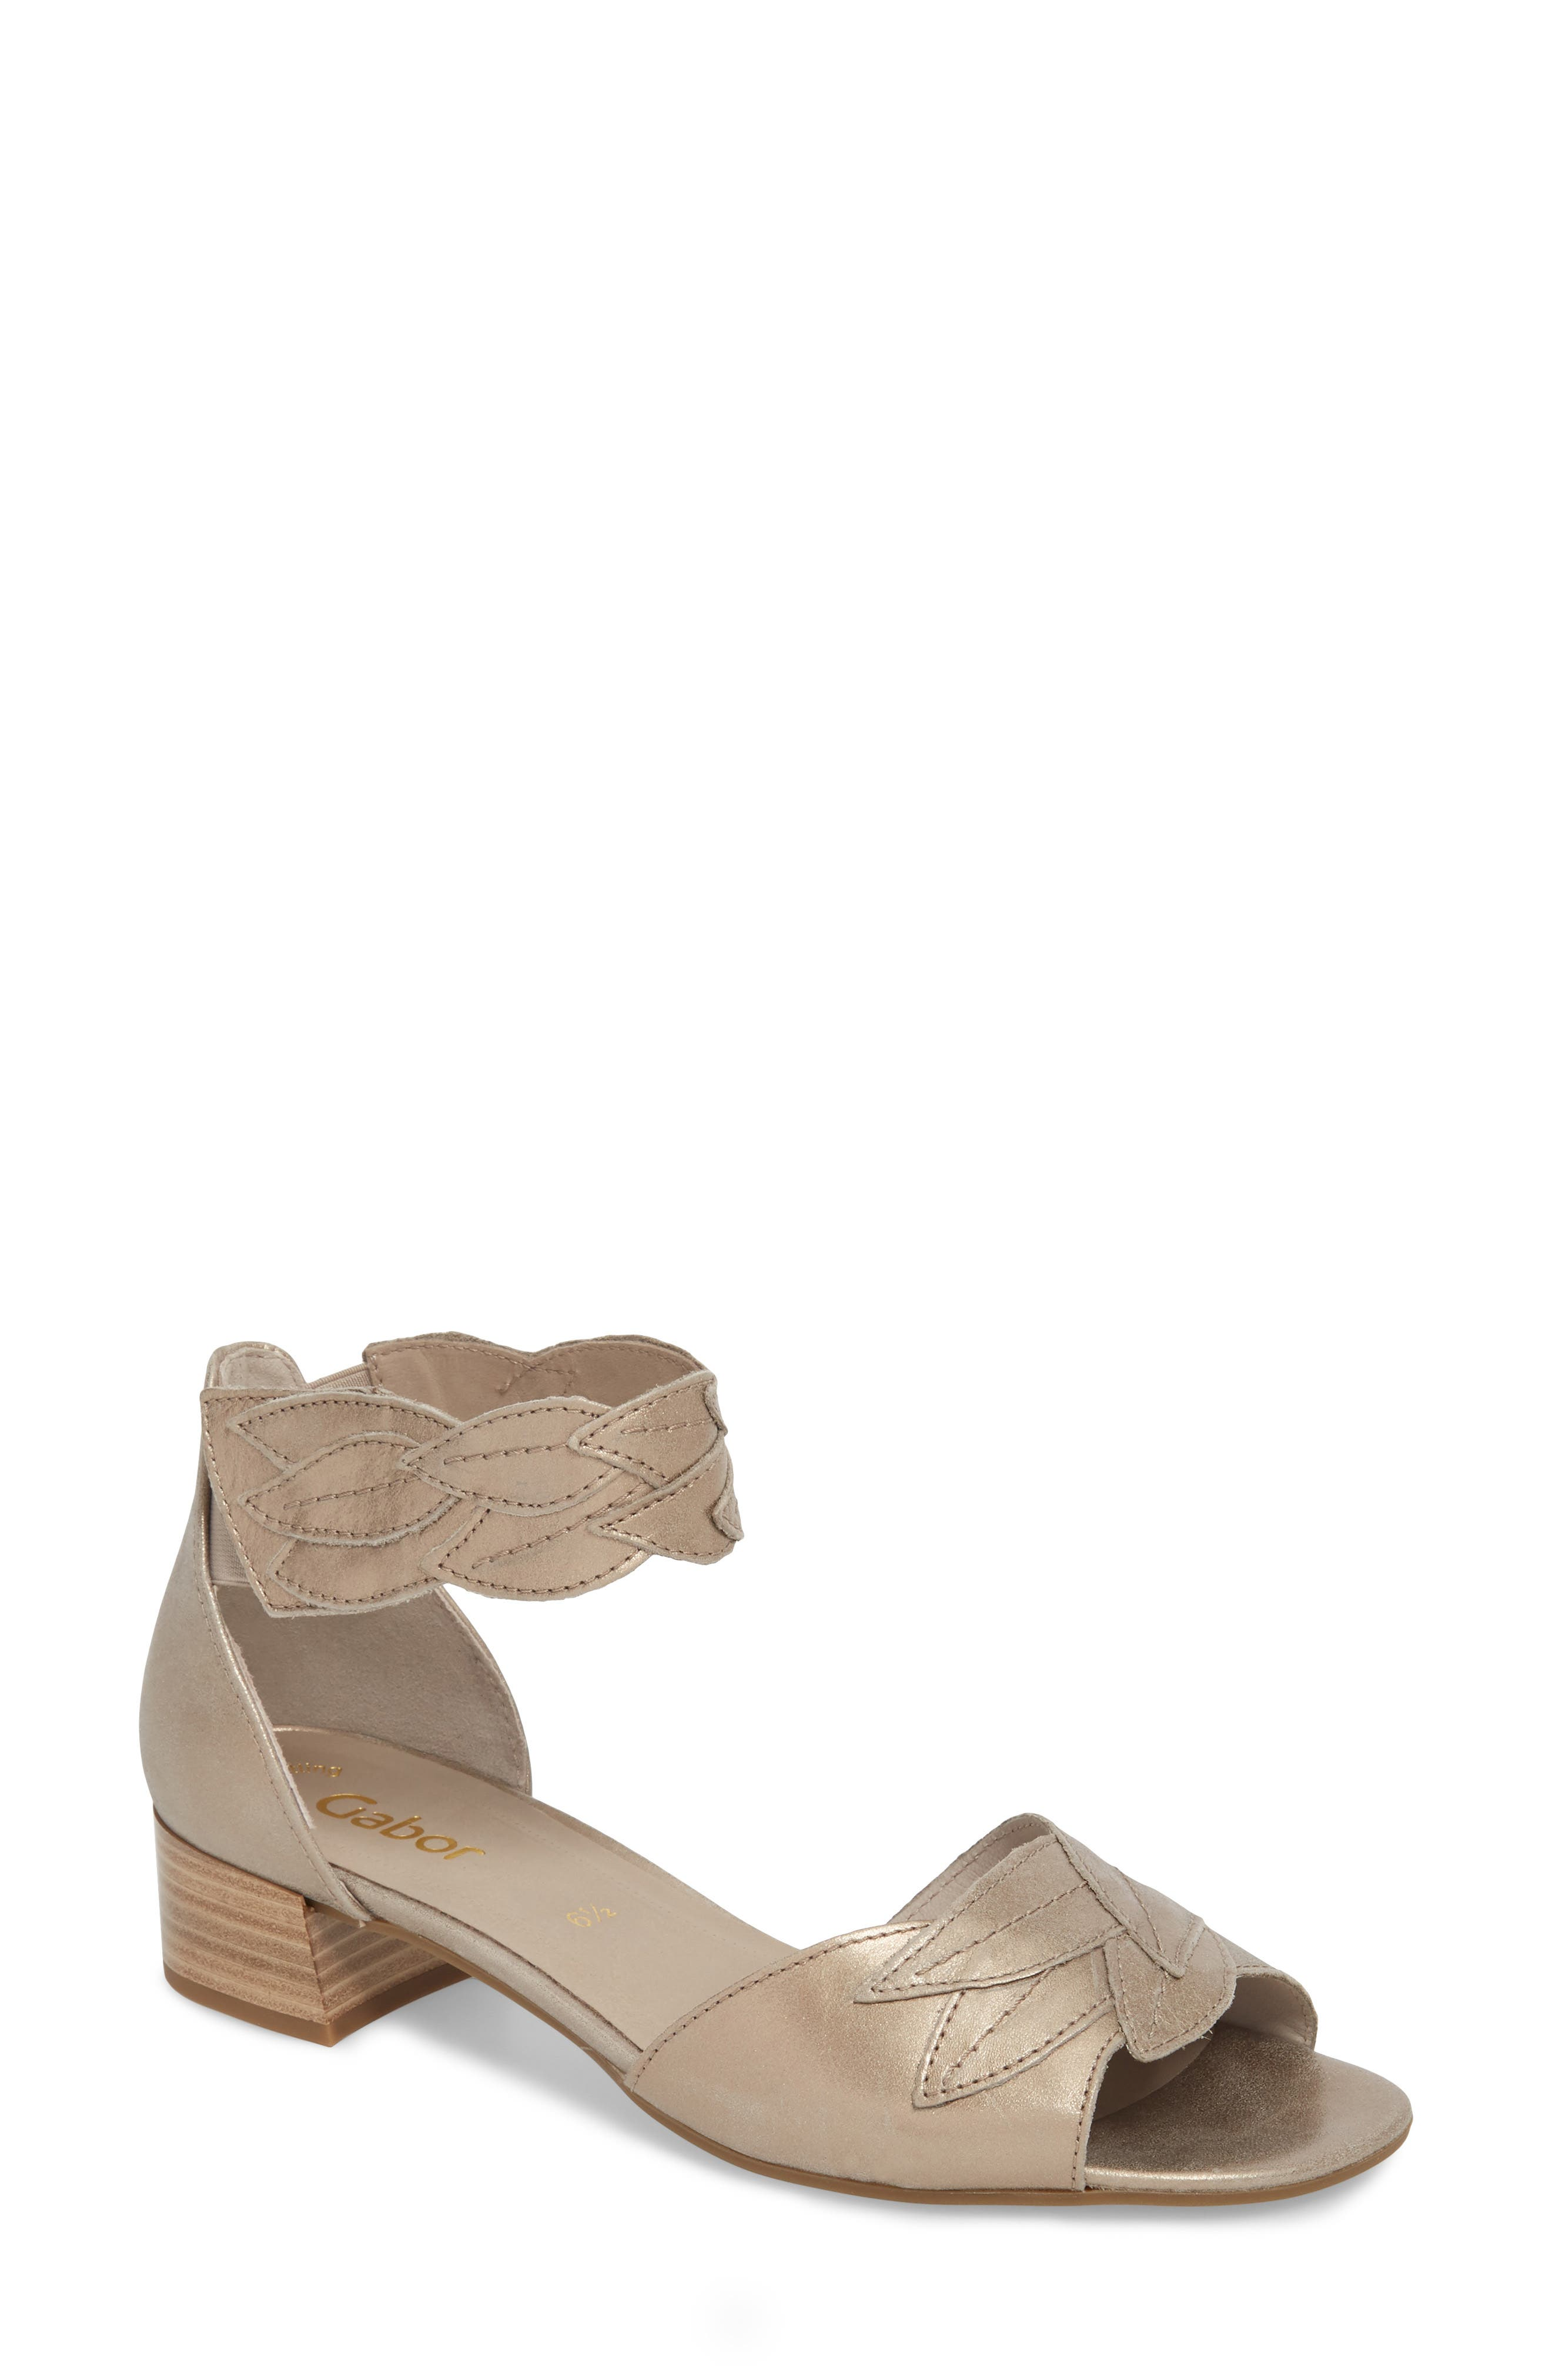 Leaf Ankle Strap Sandal,                             Main thumbnail 1, color,                             Beige Metallic Leather